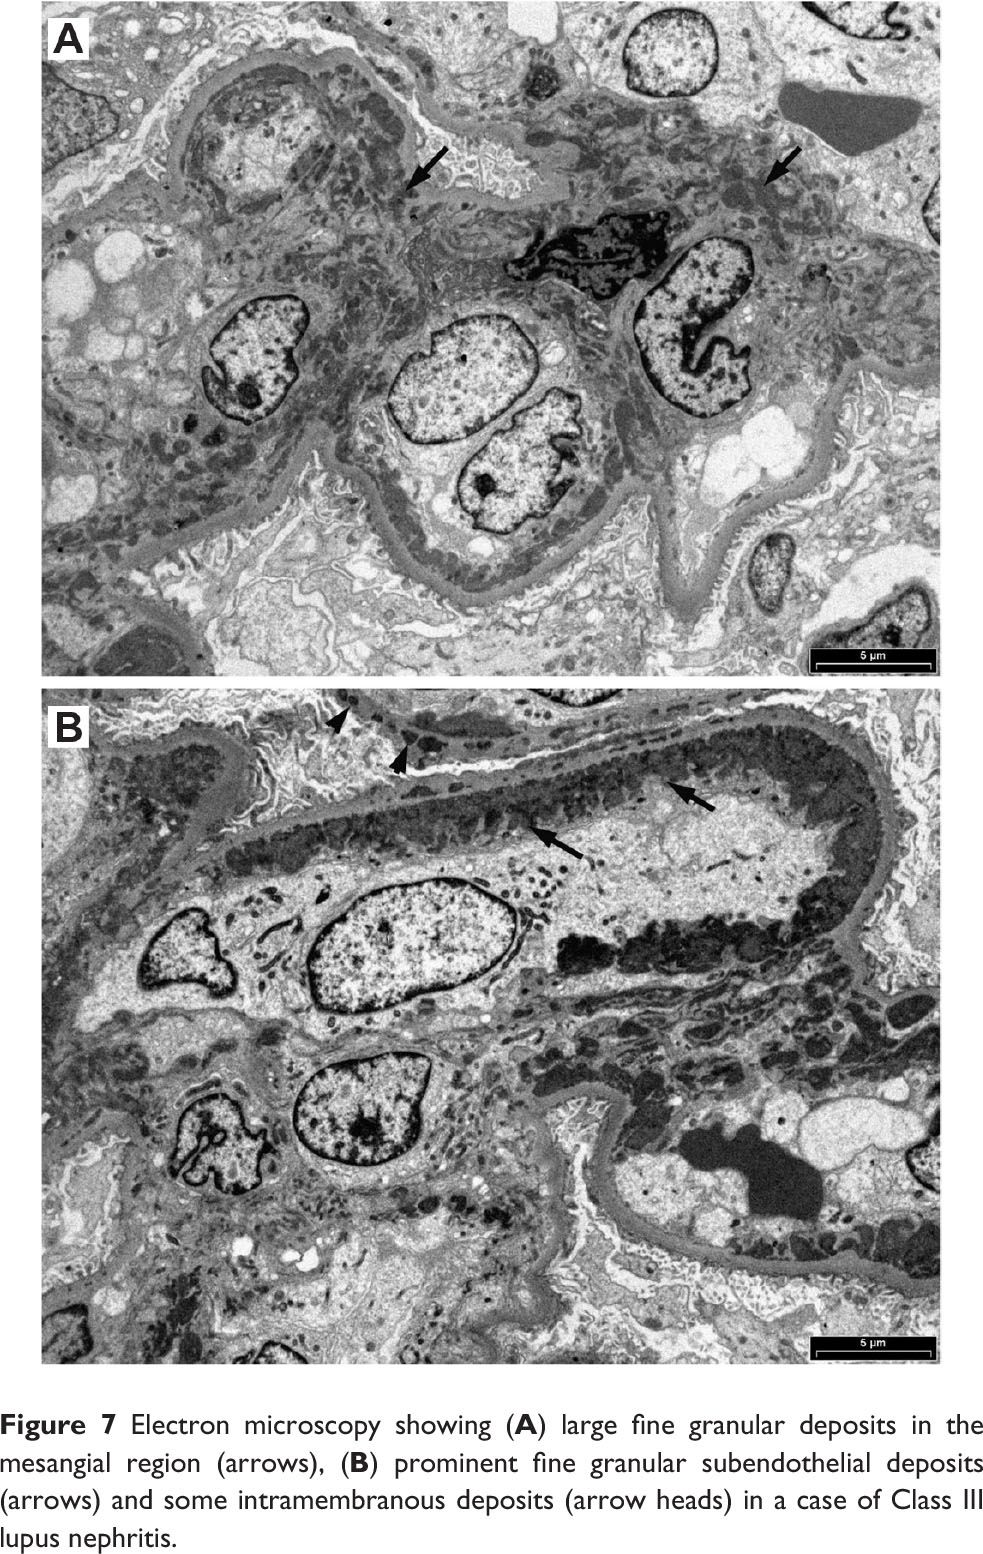 Figure 7 Electron microscopy showing (A) large fine granular deposits in the mesangial region (arrows), (B) prominent fine granular subendothelial deposits (arrows) and some intramembranous deposits (arrow heads) in a case of Class III lupus nephritis.